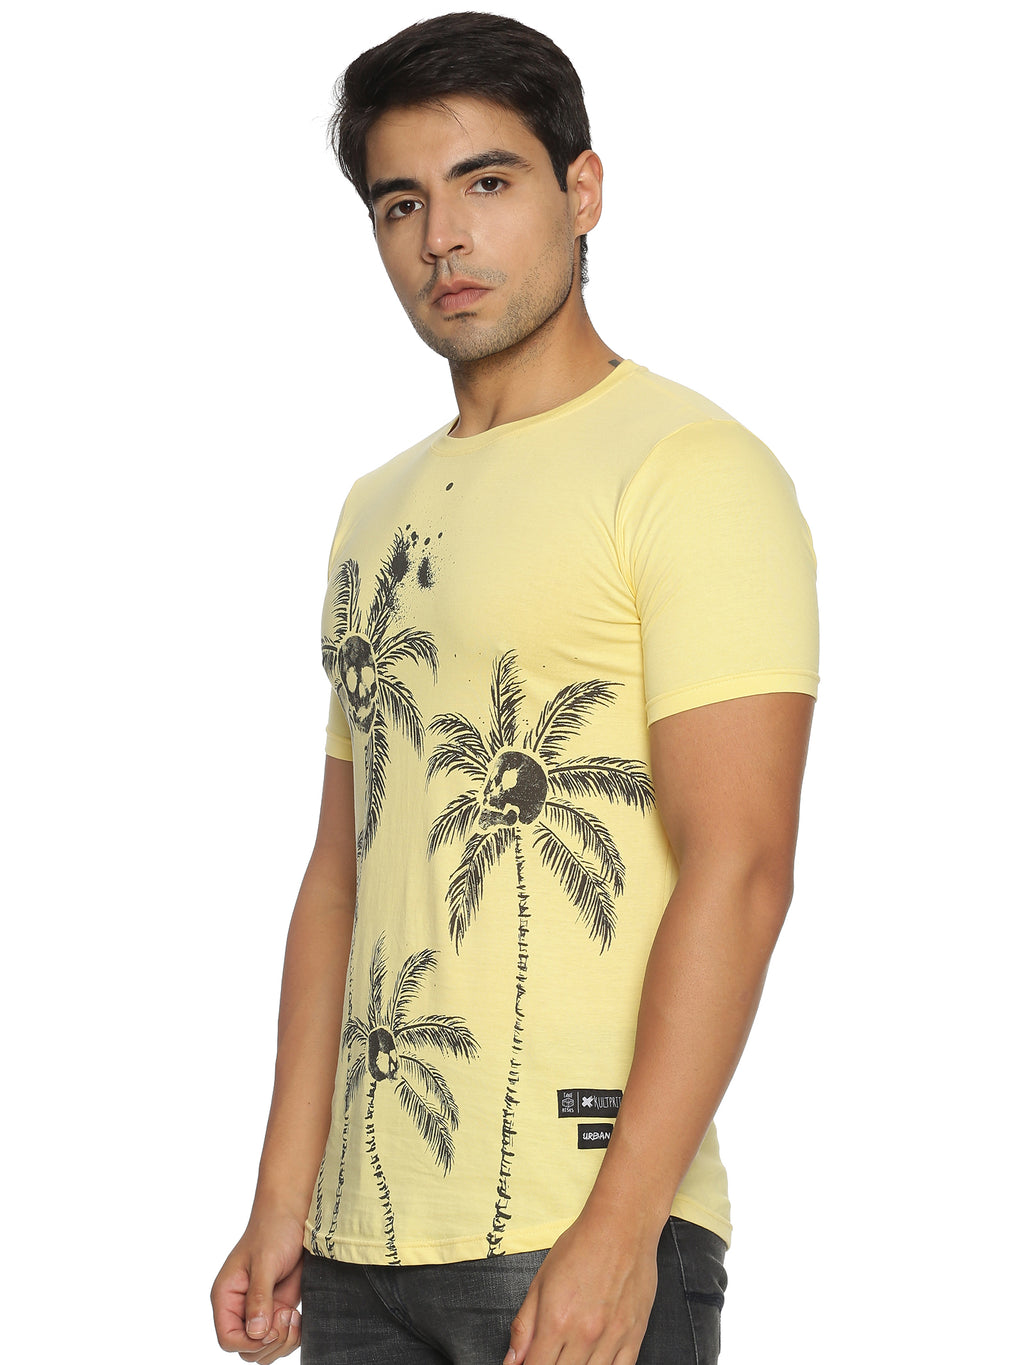 Kultprit Cotton Round Neck Men Printed T-Shirt